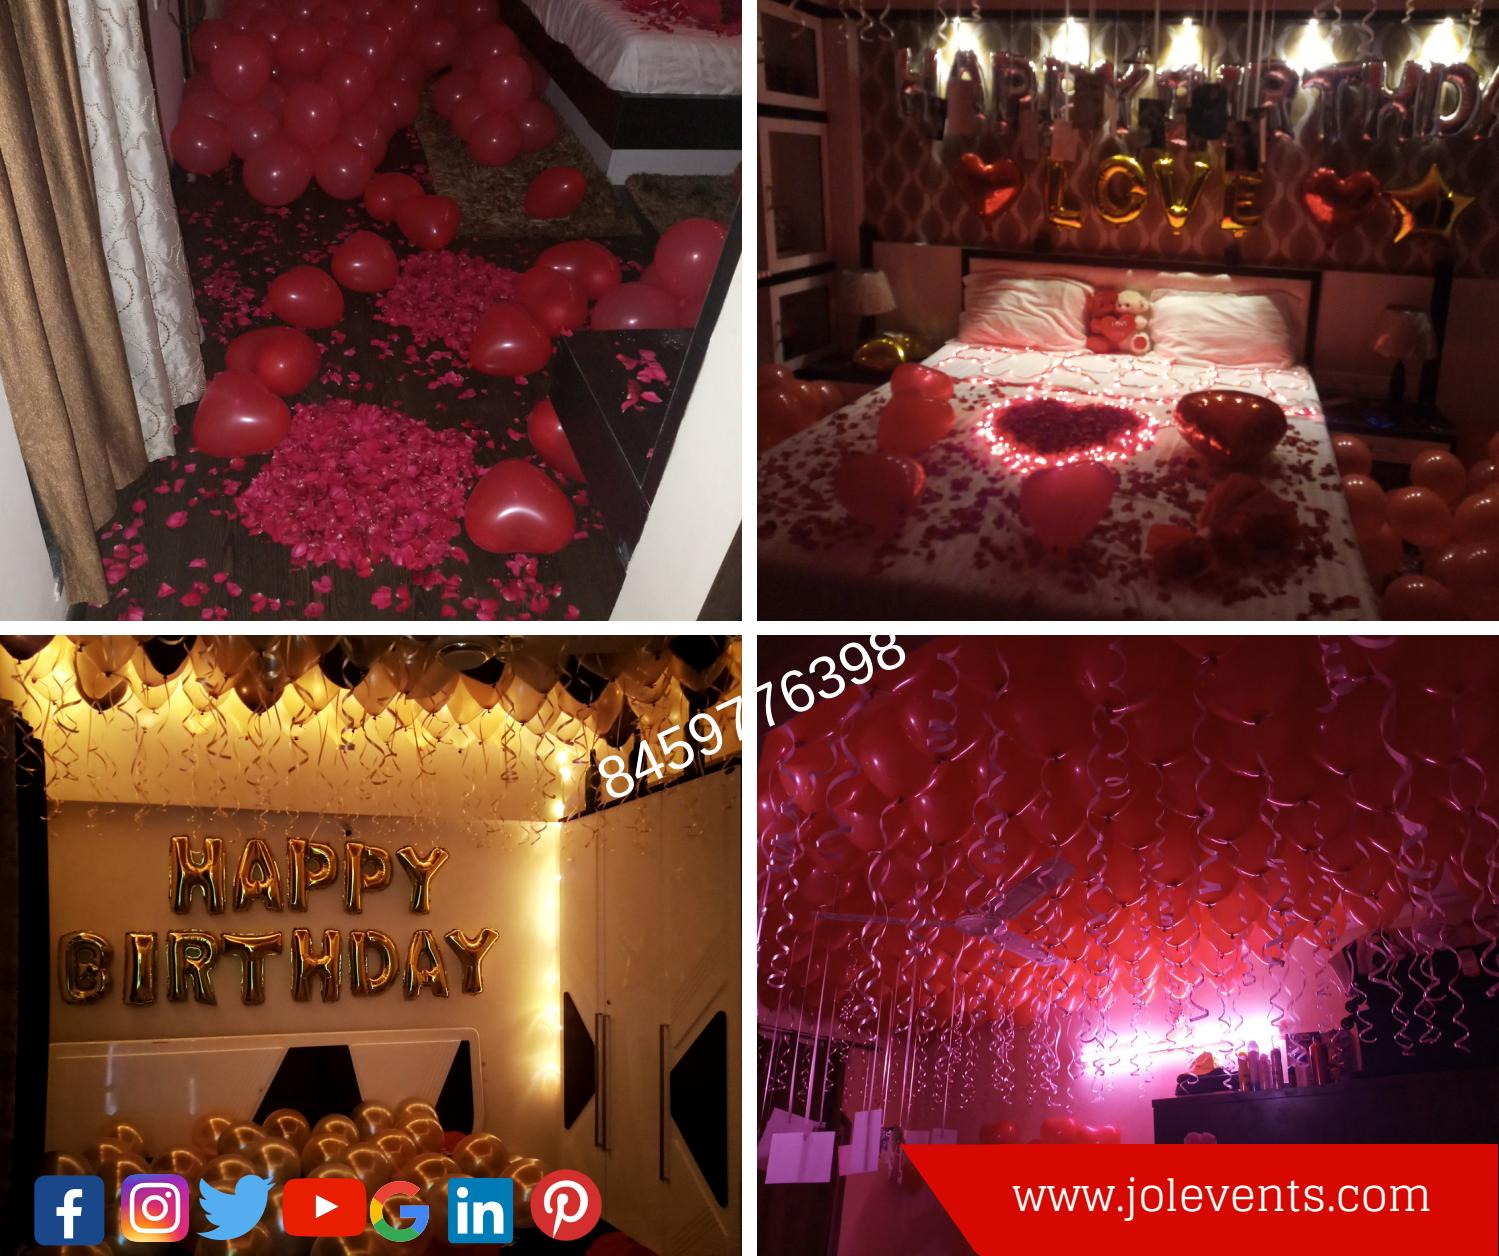 Surprise Your Partner With Romantic Room Decoration